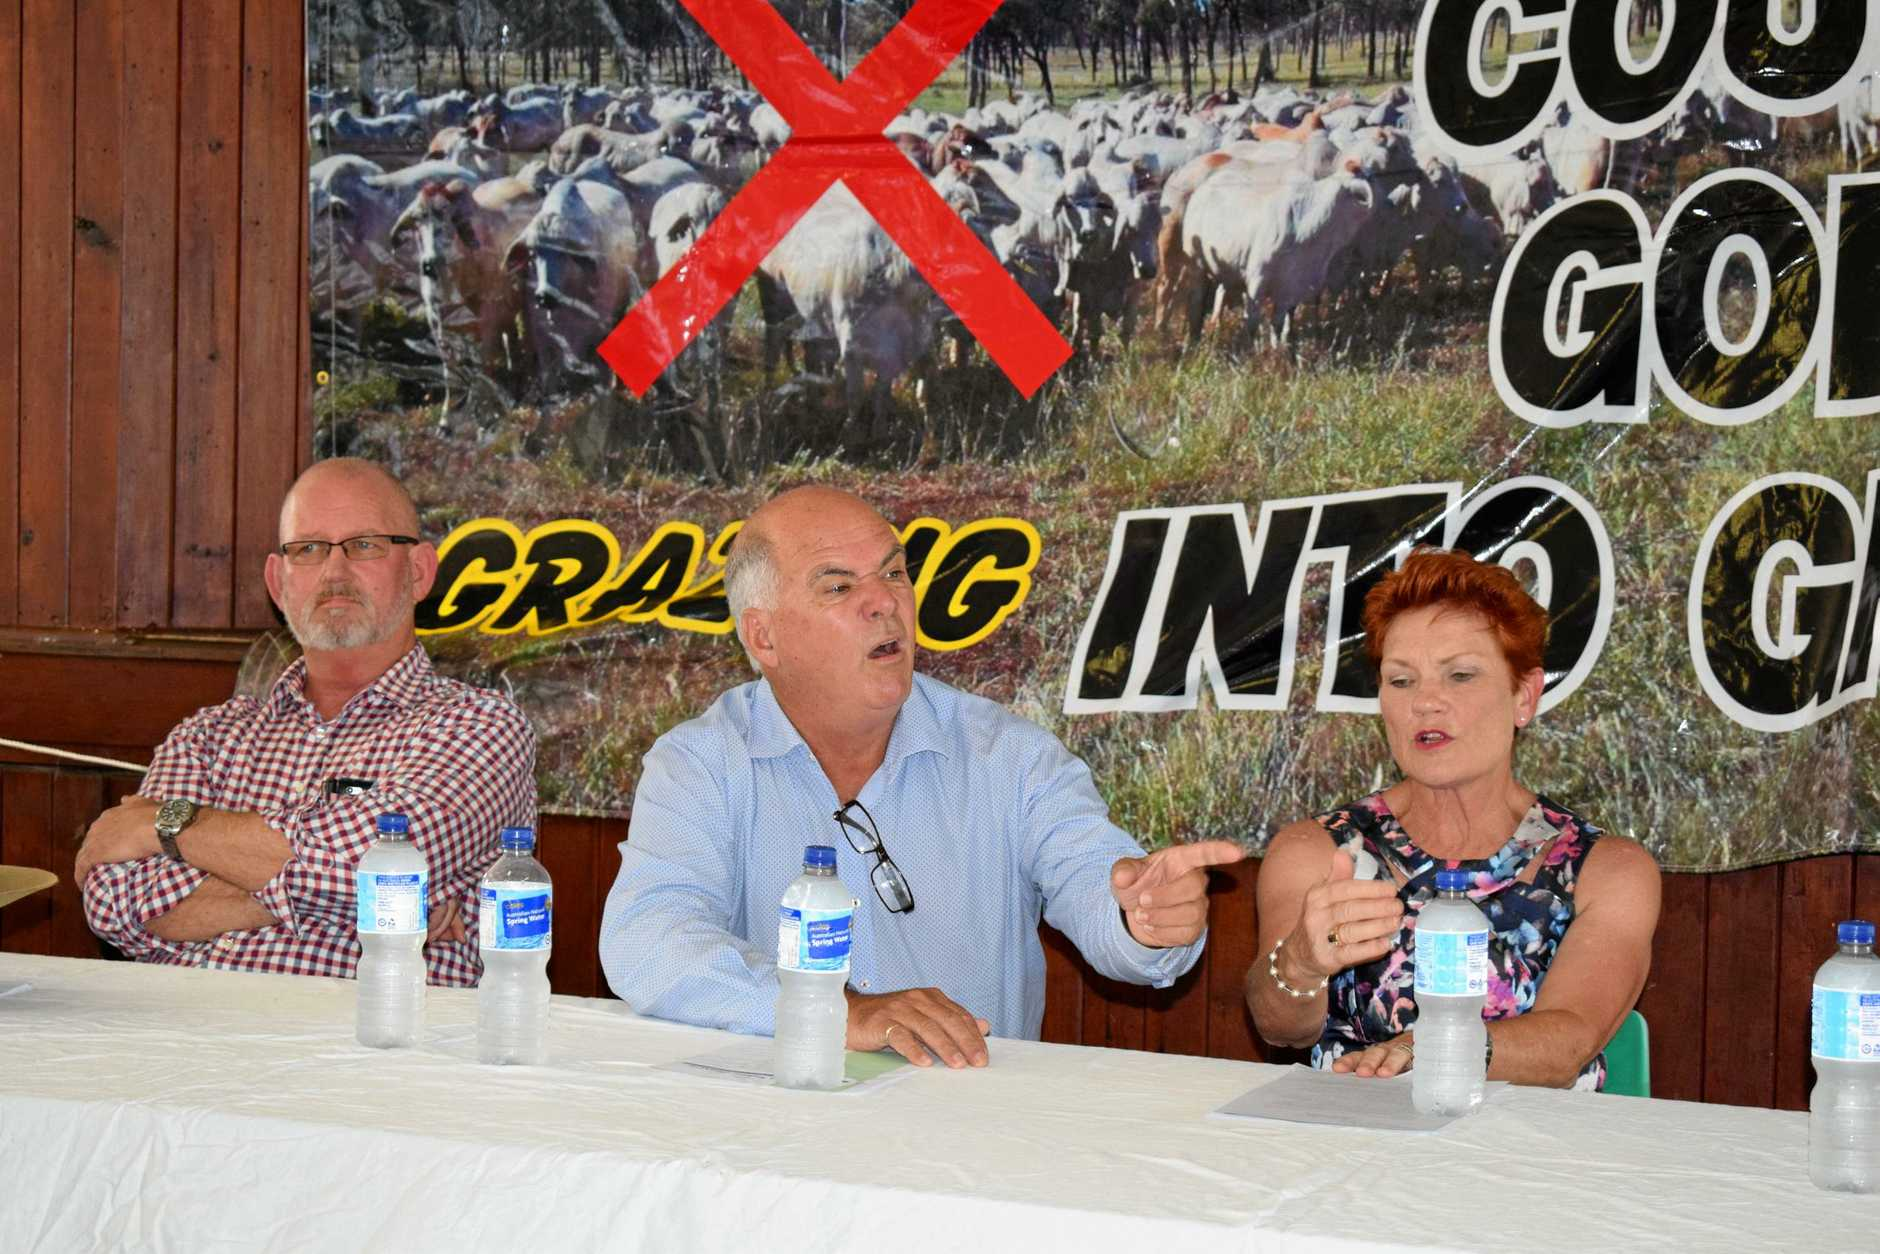 Rockhampton MP and Queensland Agriculture Minister Bill Byrne, Livingstone Mayor Bill Ludwig and Queensland Senator and One Nation Party Leader Pauline Hanson